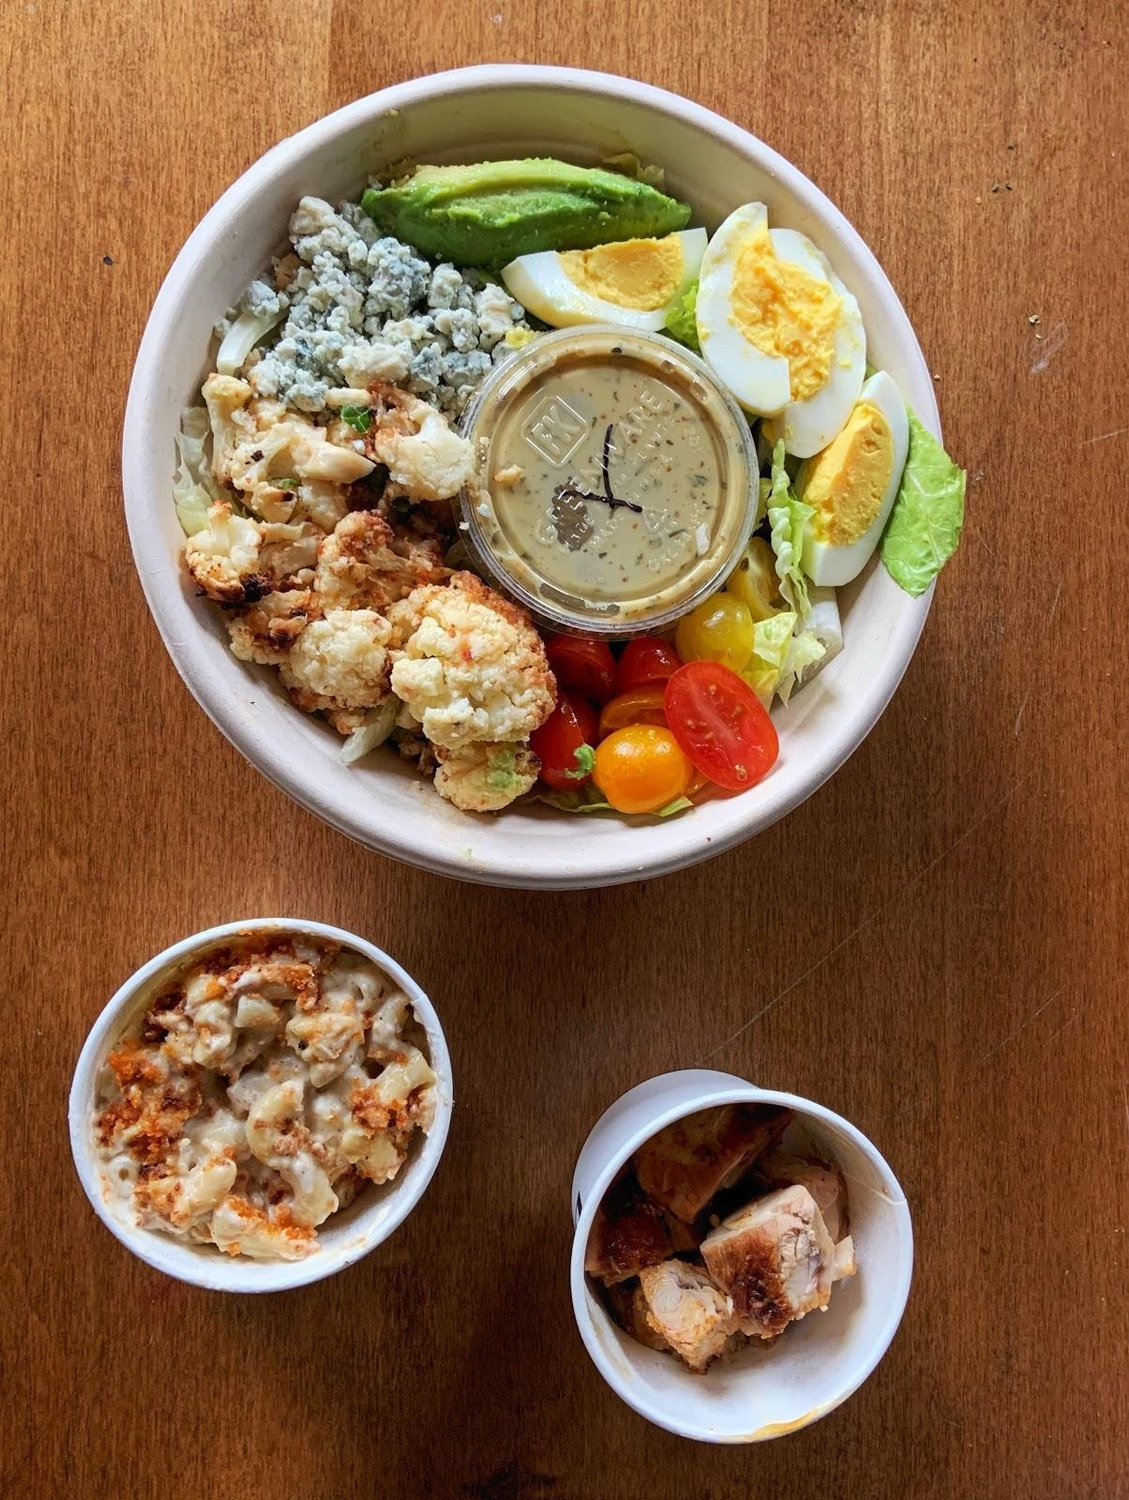 DIG's Cauliflower Cobb Salad with Charred Chicken and a side of Mac & Cheese.